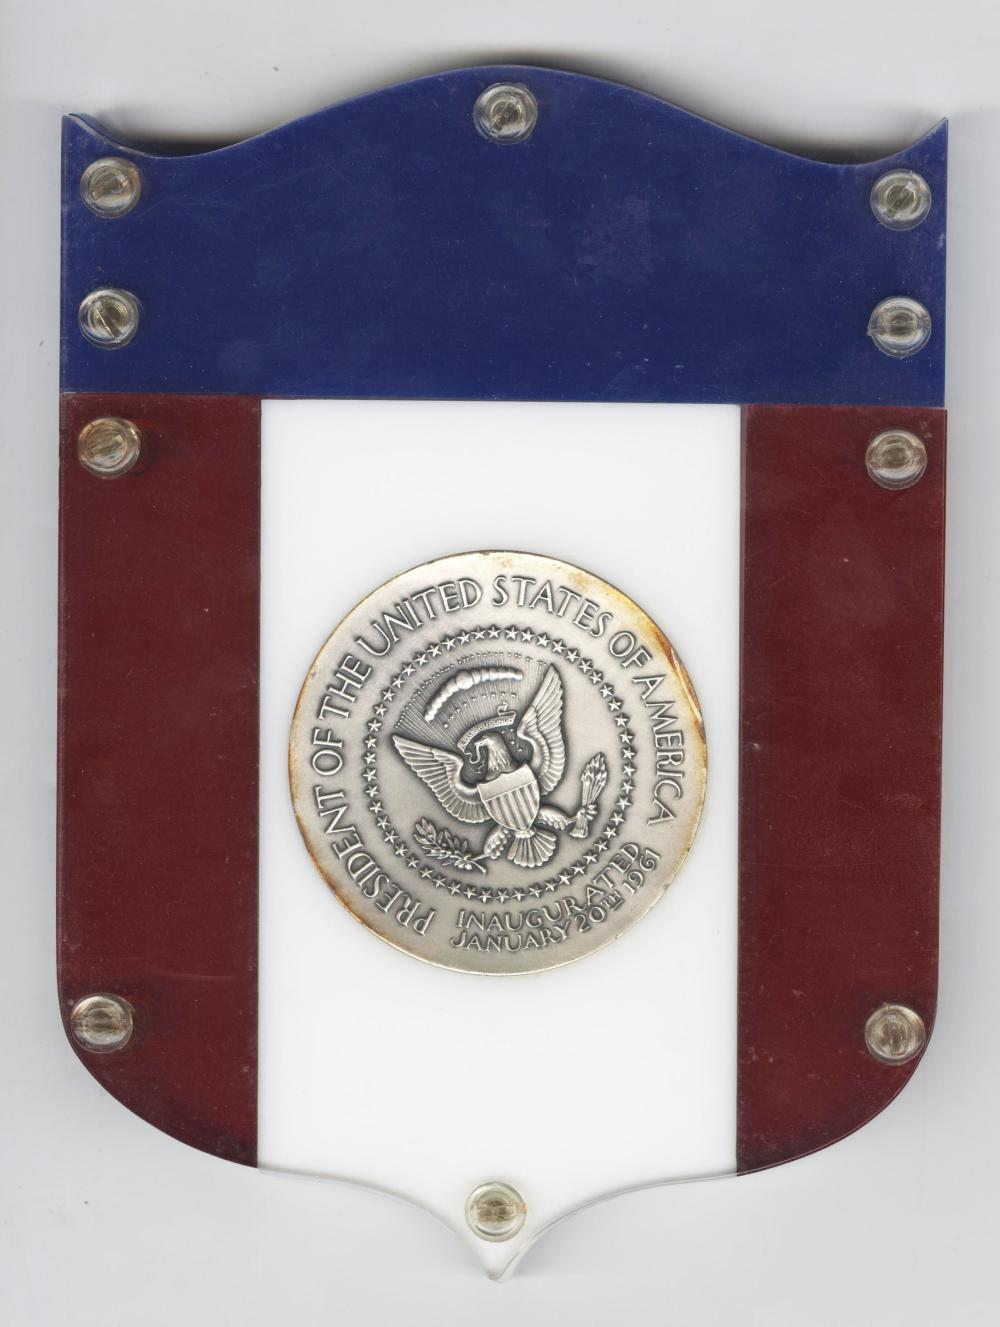 President Kennedy Official 1961 Inaugural Medal Cast in .999 pure Silver